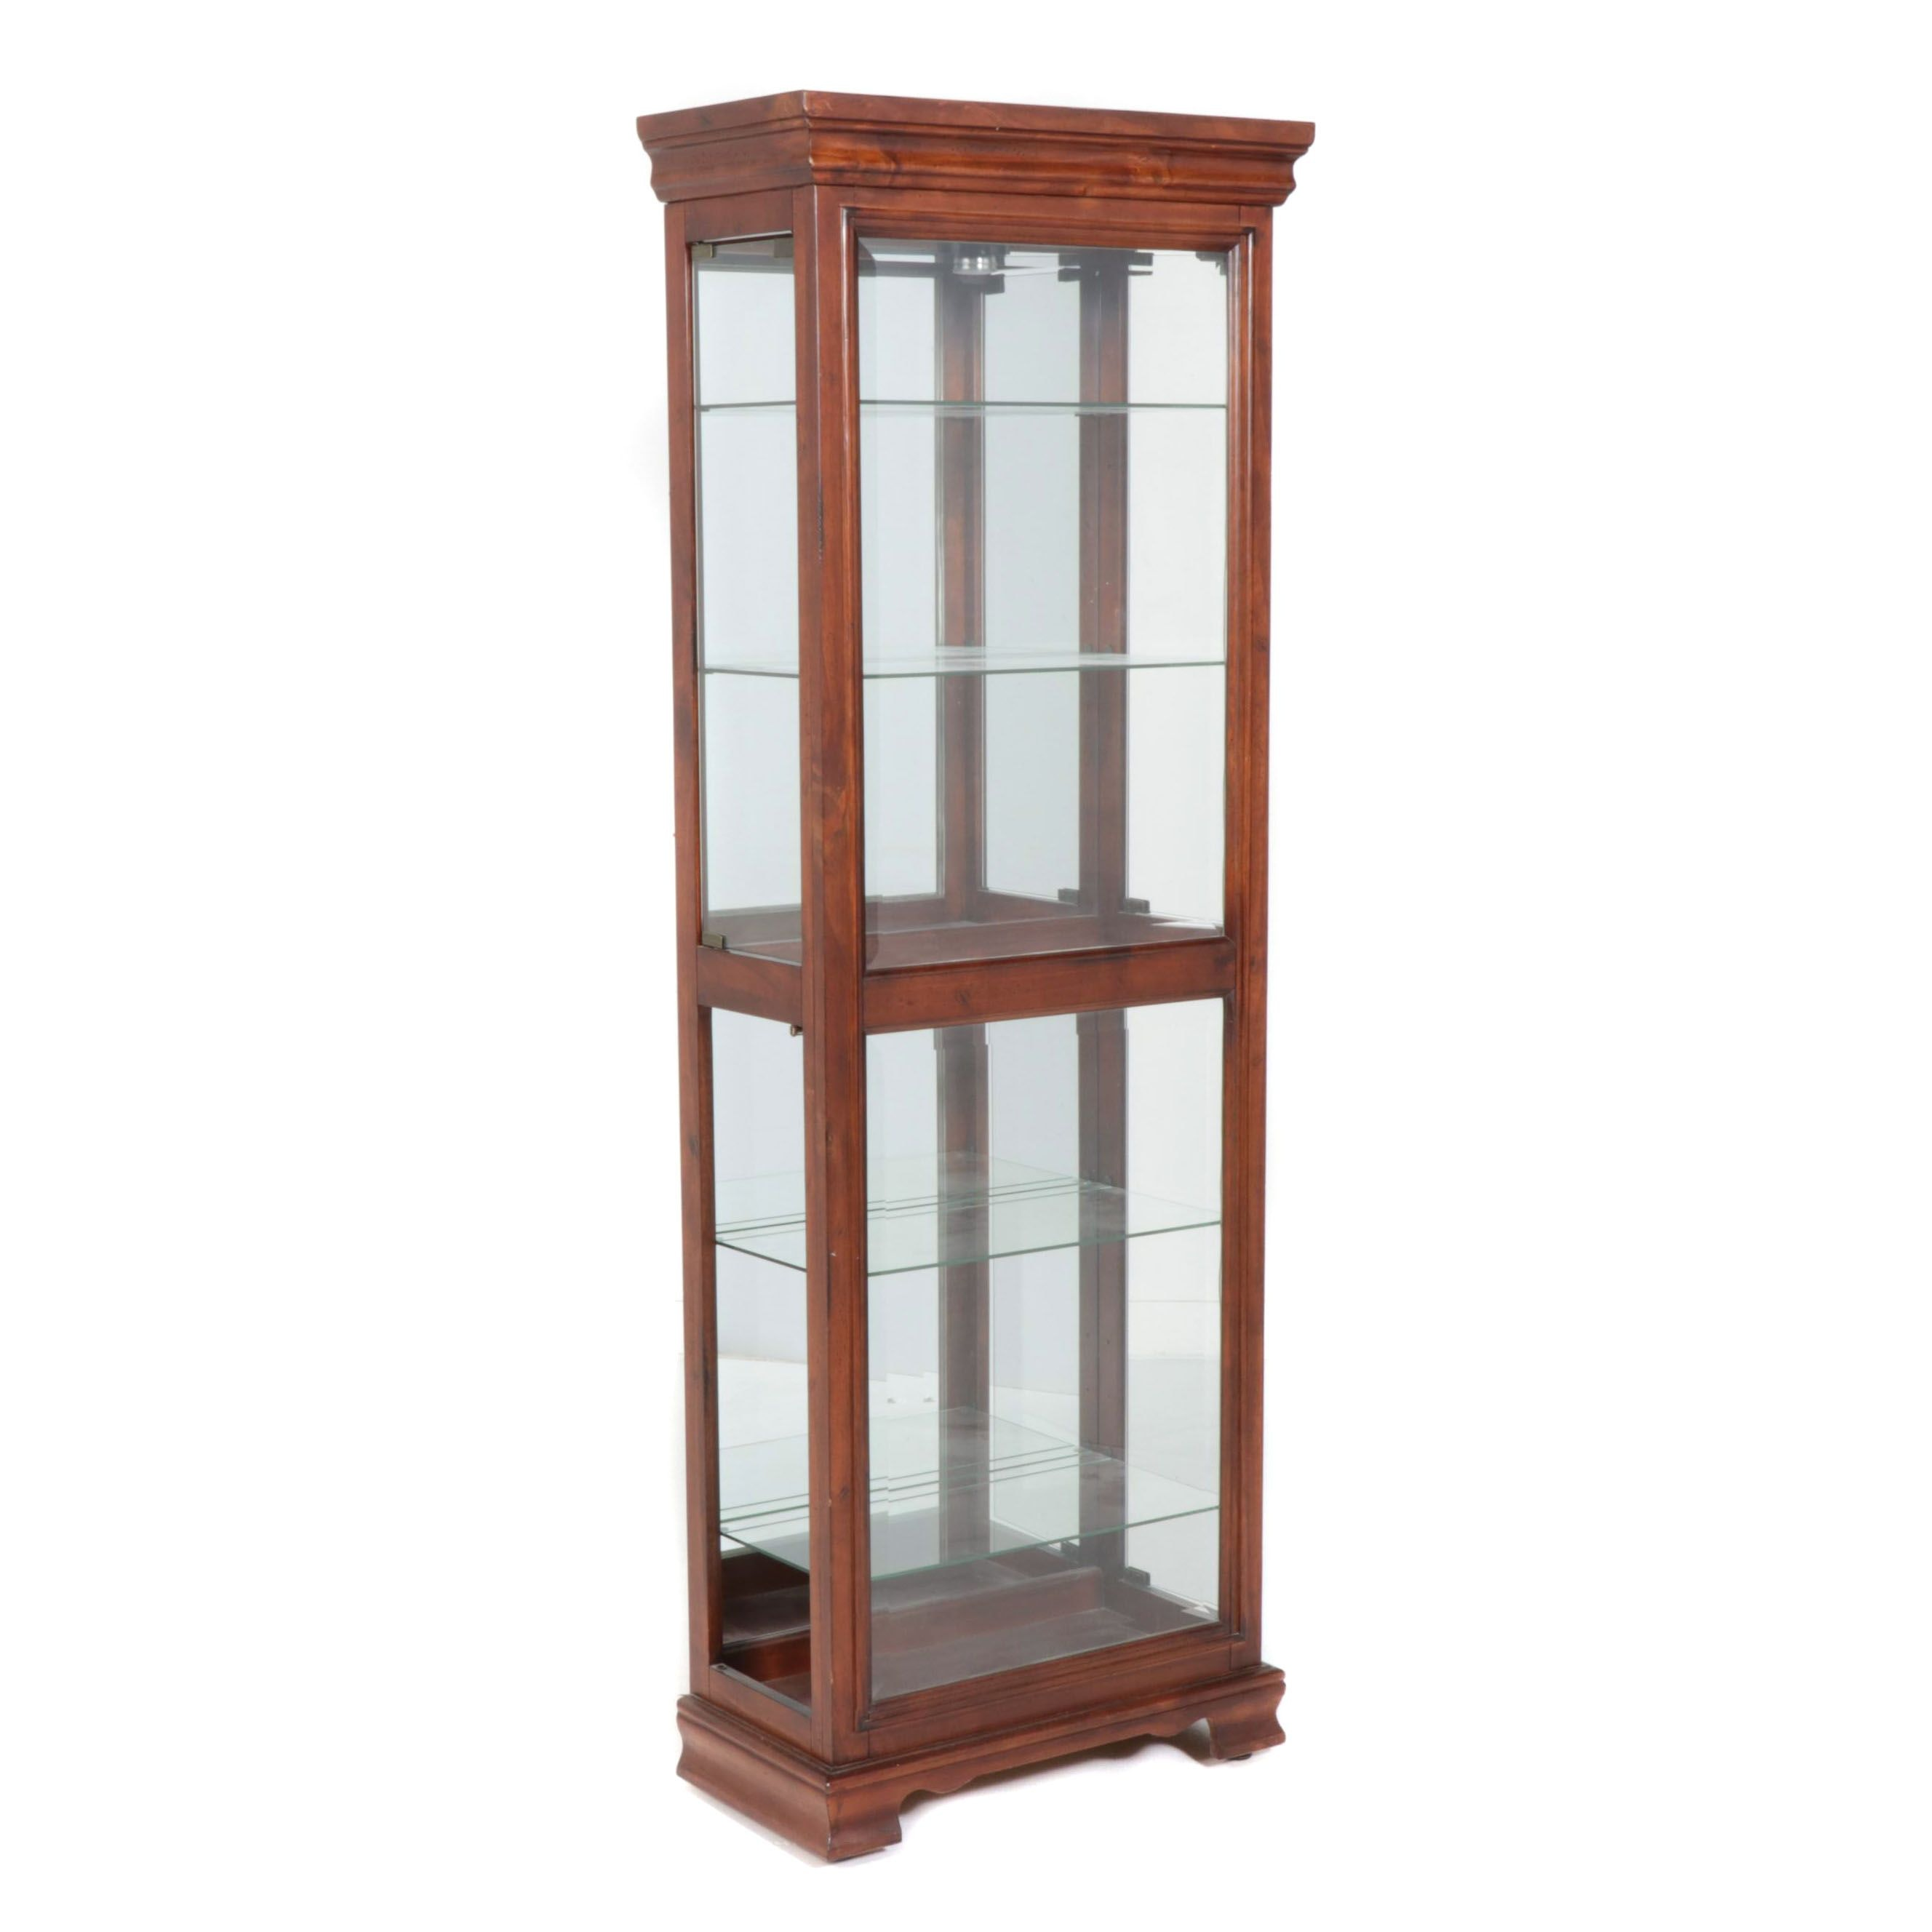 Contemporary Cherry Finish Glass Paneled Display Cabinet by American Signature